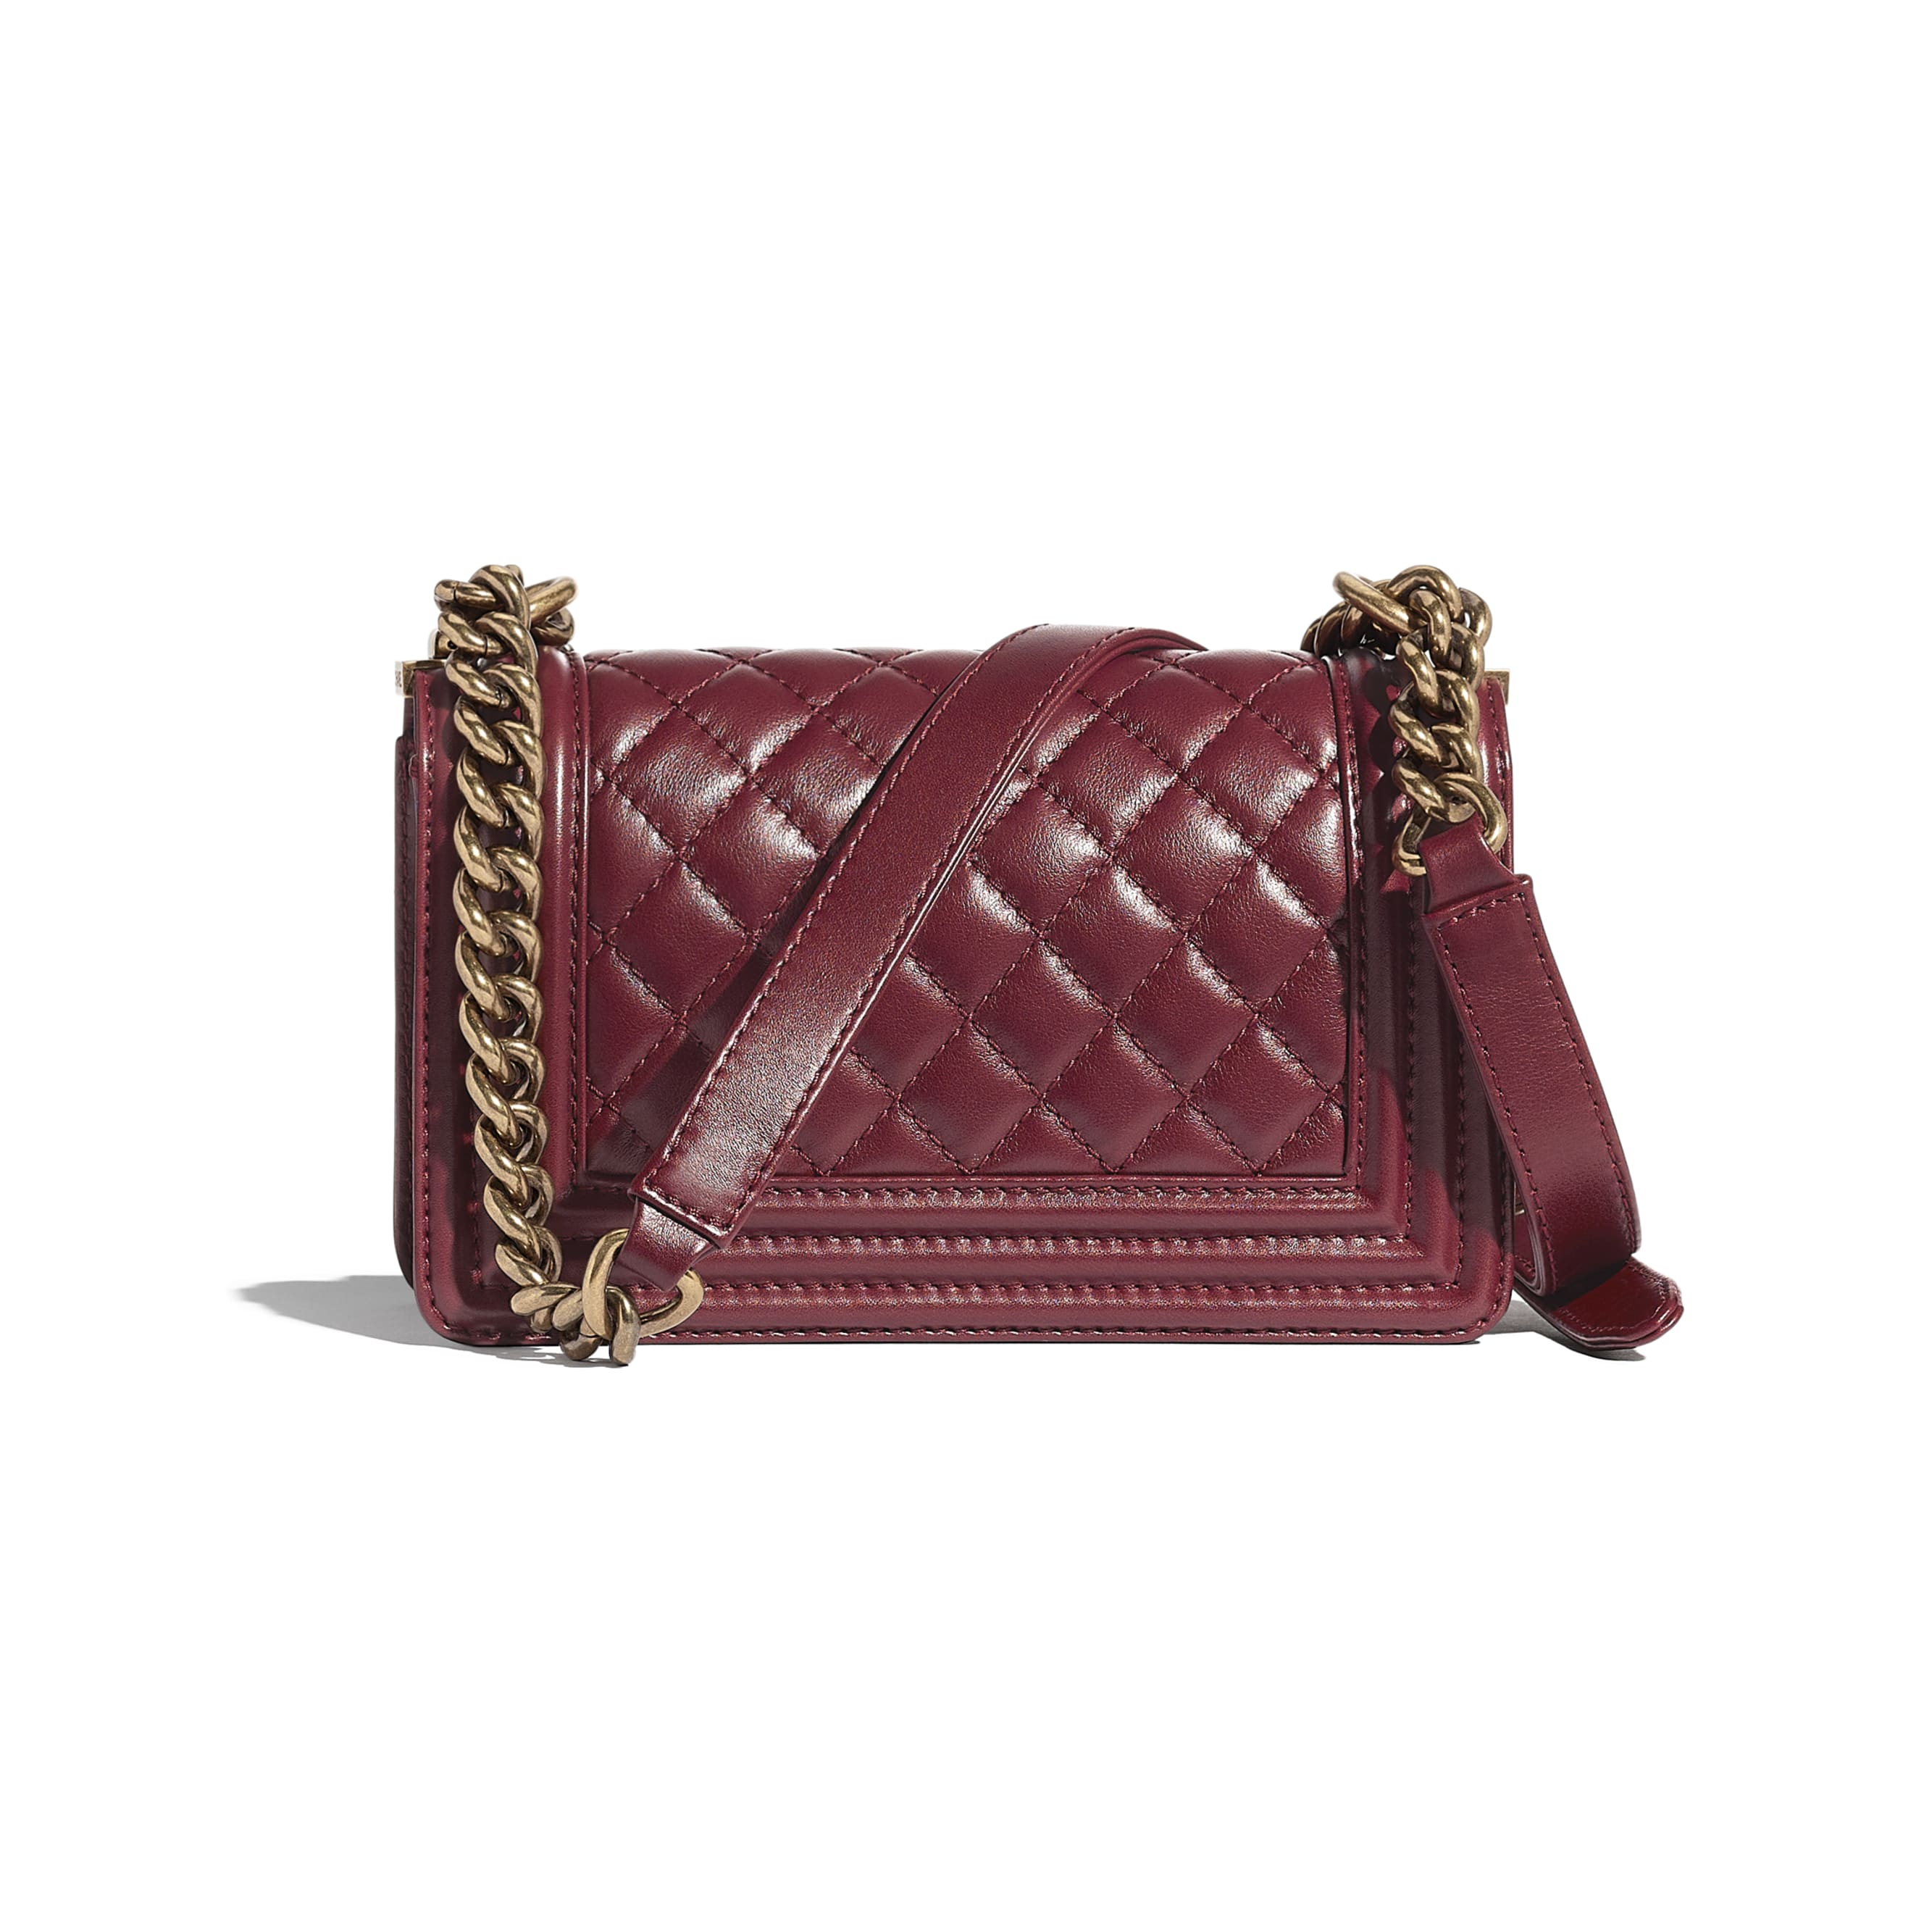 Small BOY CHANEL Handbag - Burgundy - Calfskin & Aged Gold-Tone Metal - CHANEL - Alternative view - see standard sized version